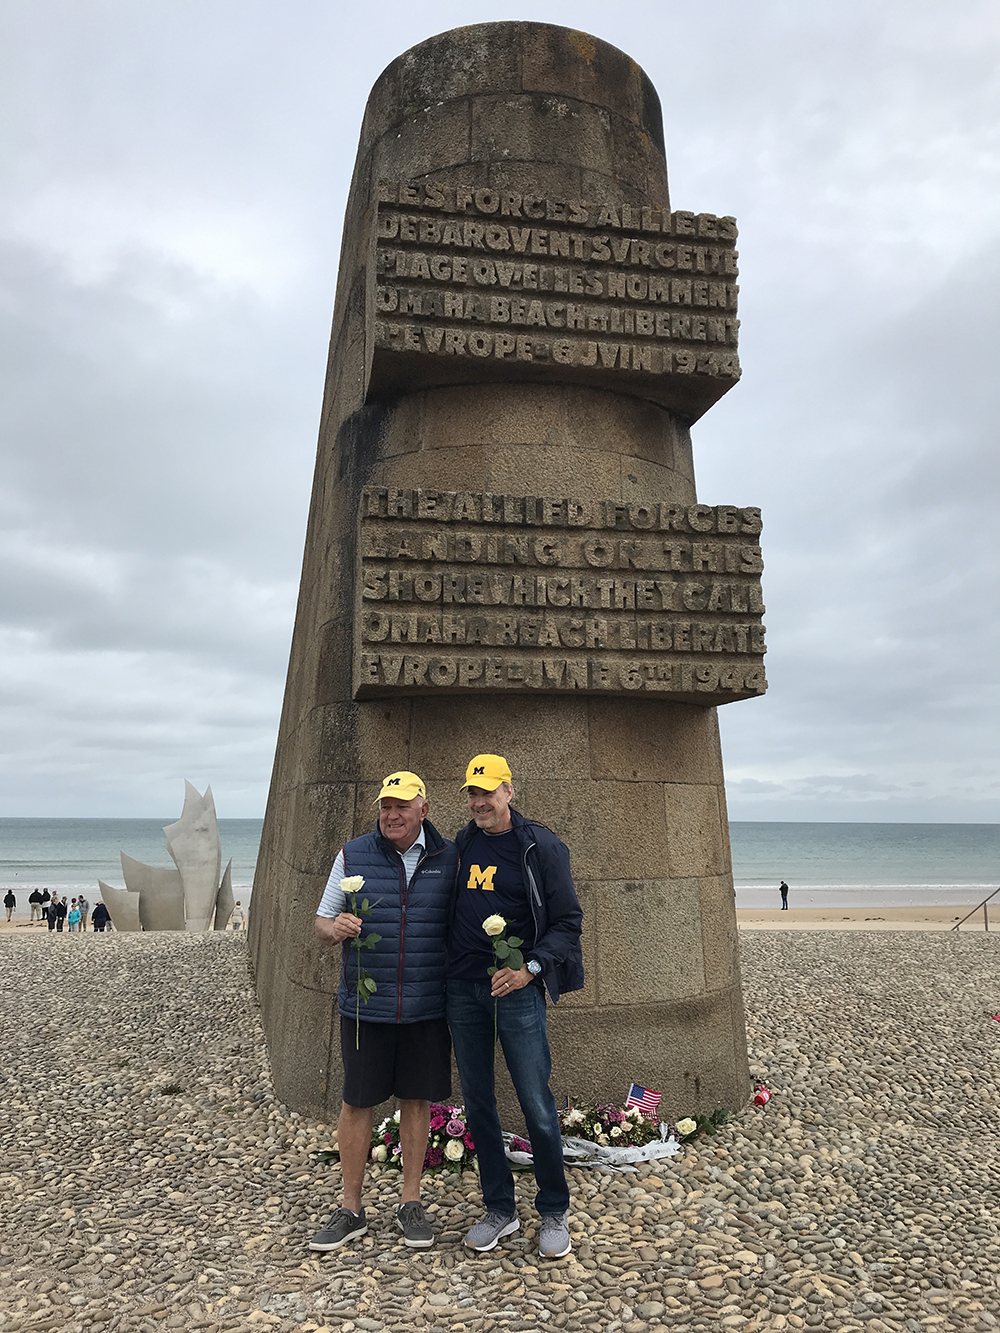 Dennis J. Jacobs, PhD'83, and Gregory Smith, '66, paid respects to the Allied soldiers of D-Day at the Omaha Beach Memorial in in Saint-Laurent-sur-Mer, Normandy, France.